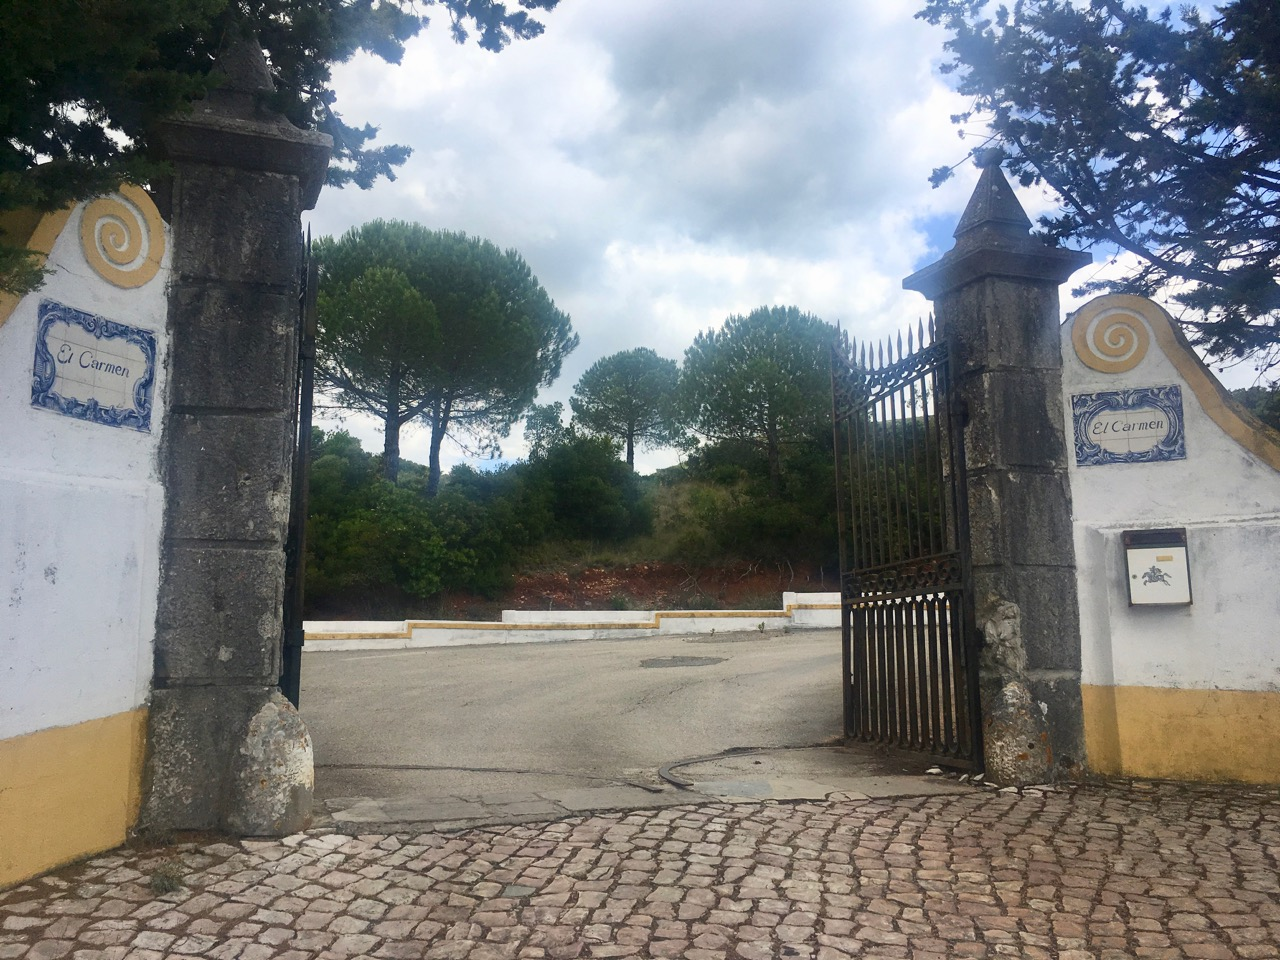 The convent gates, but still more uphill walking